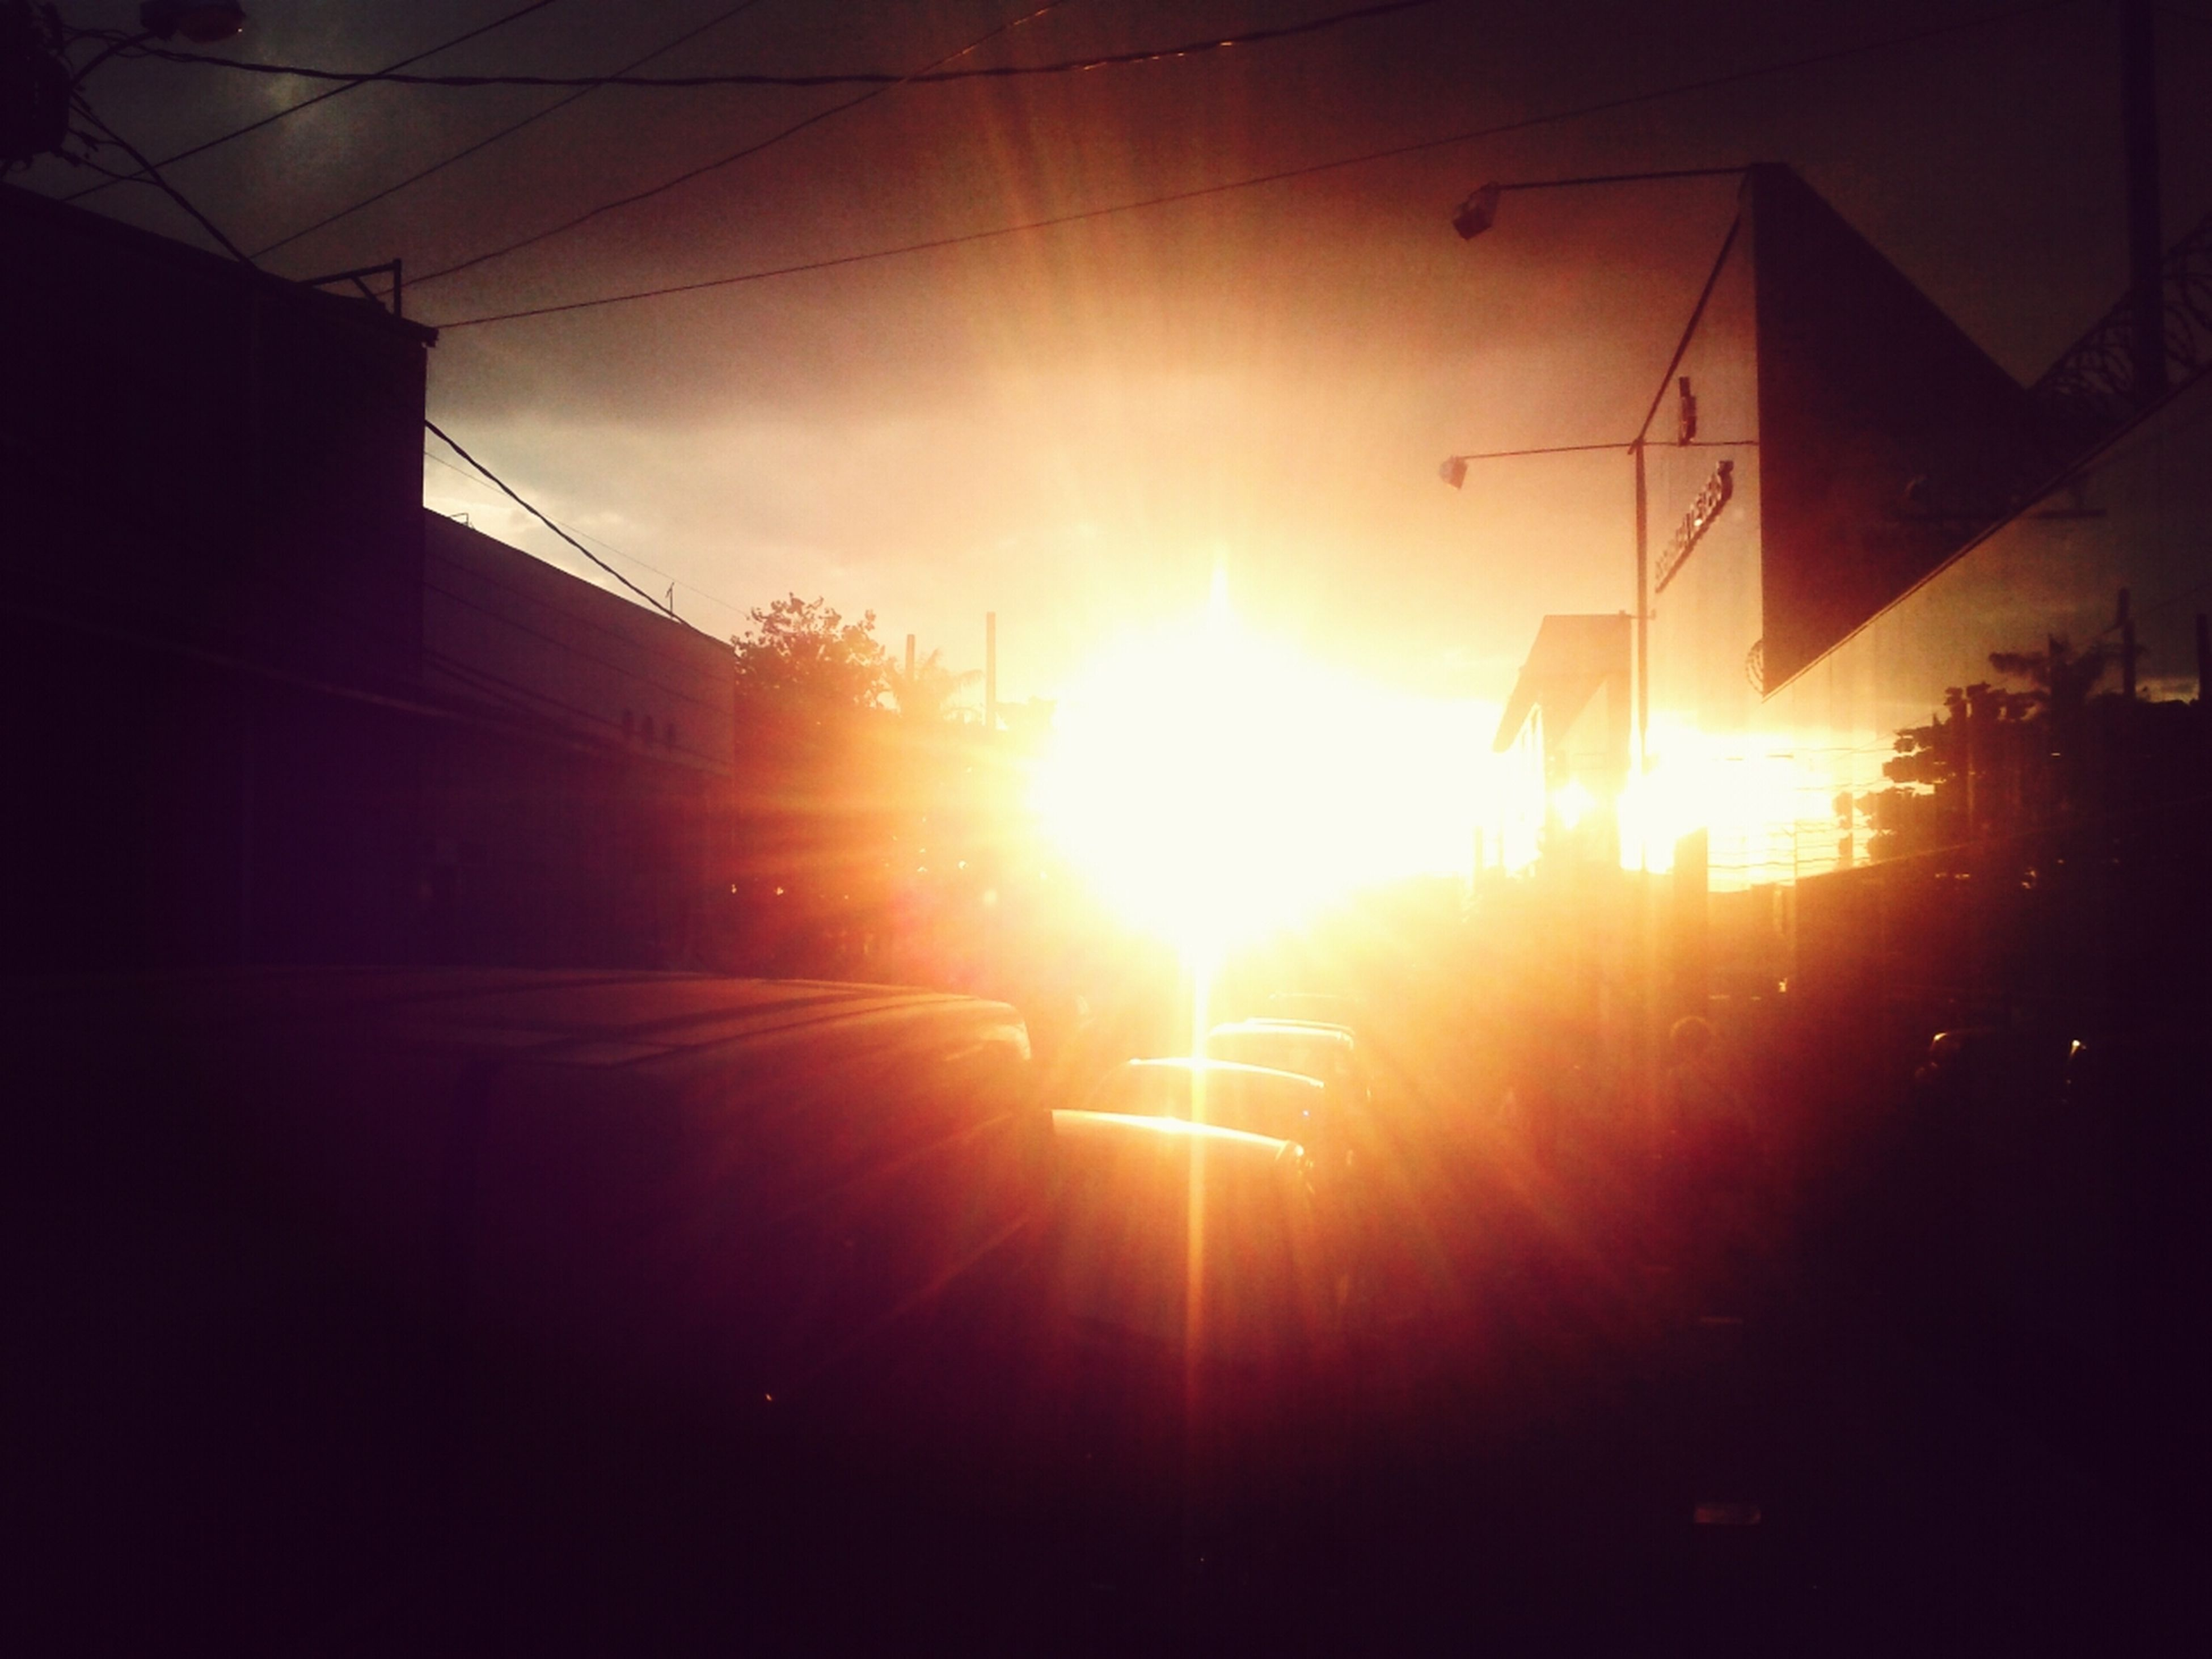 sunset, sky, sun, no people, nature, outdoors, day